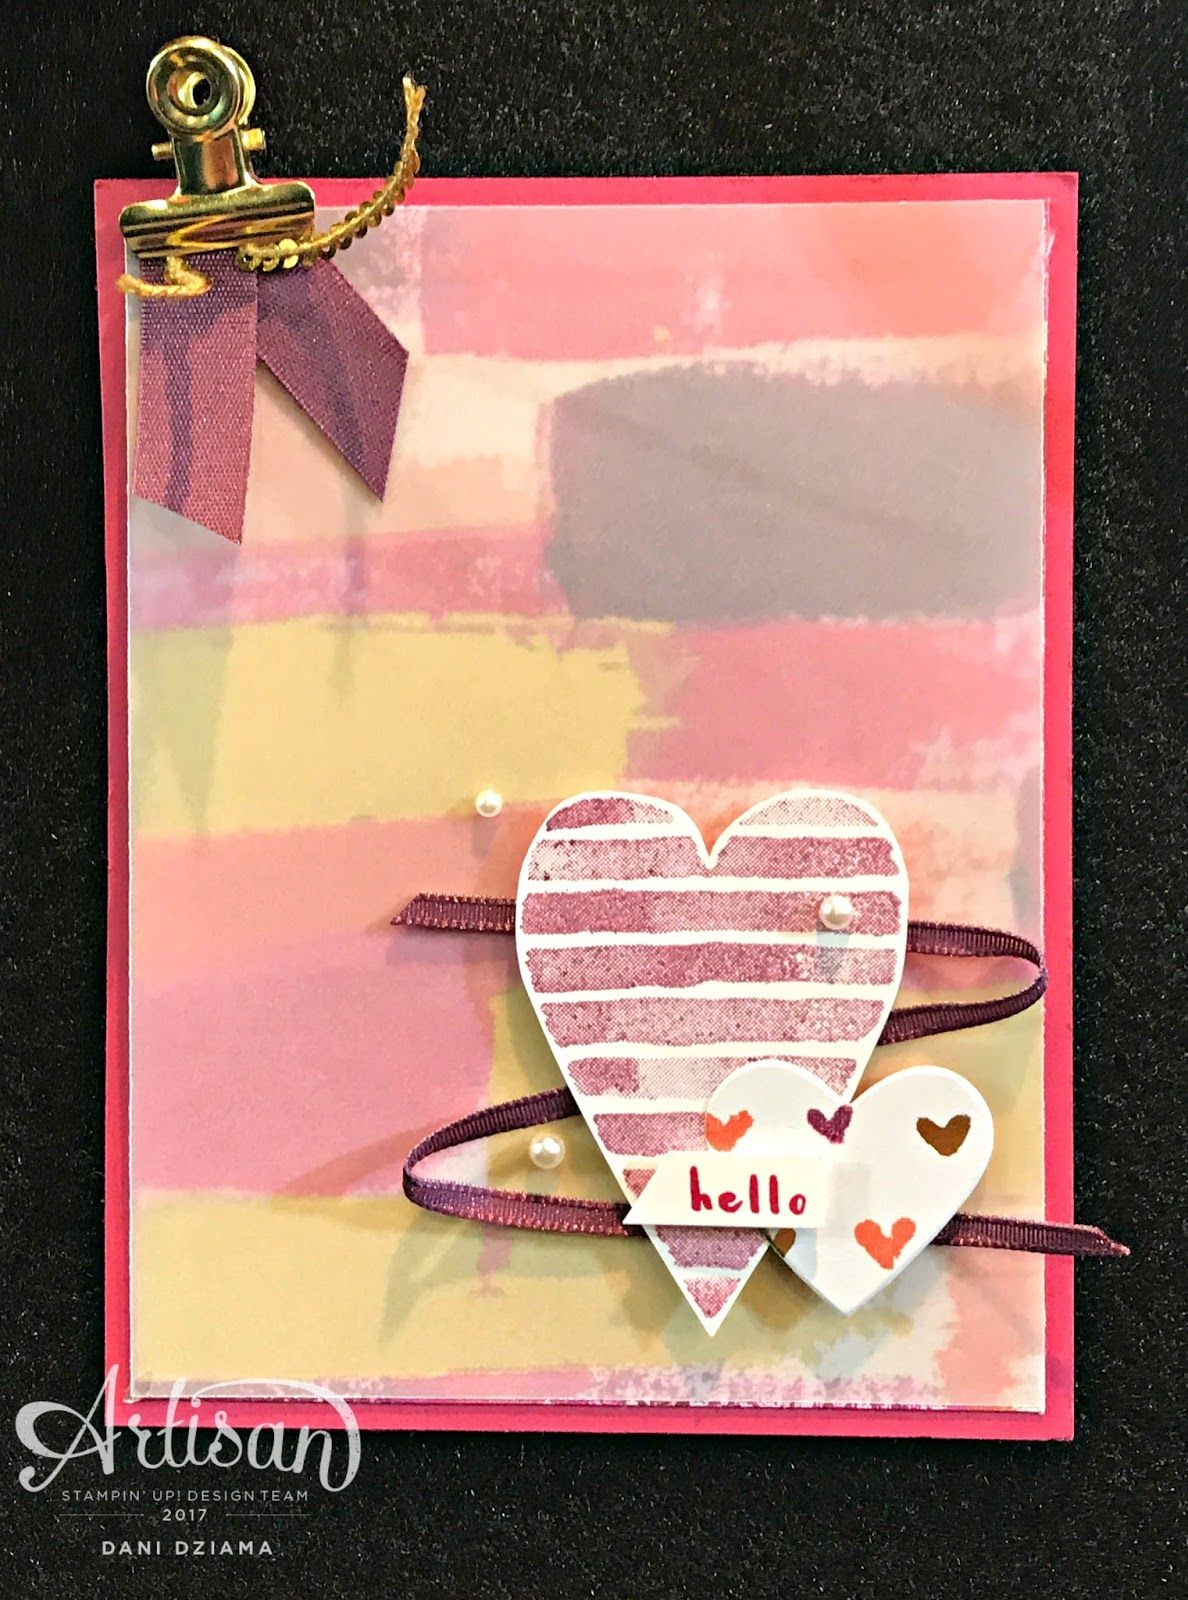 Pin By Juliet Meyer On Occasions 2018 Pinterest Display Create